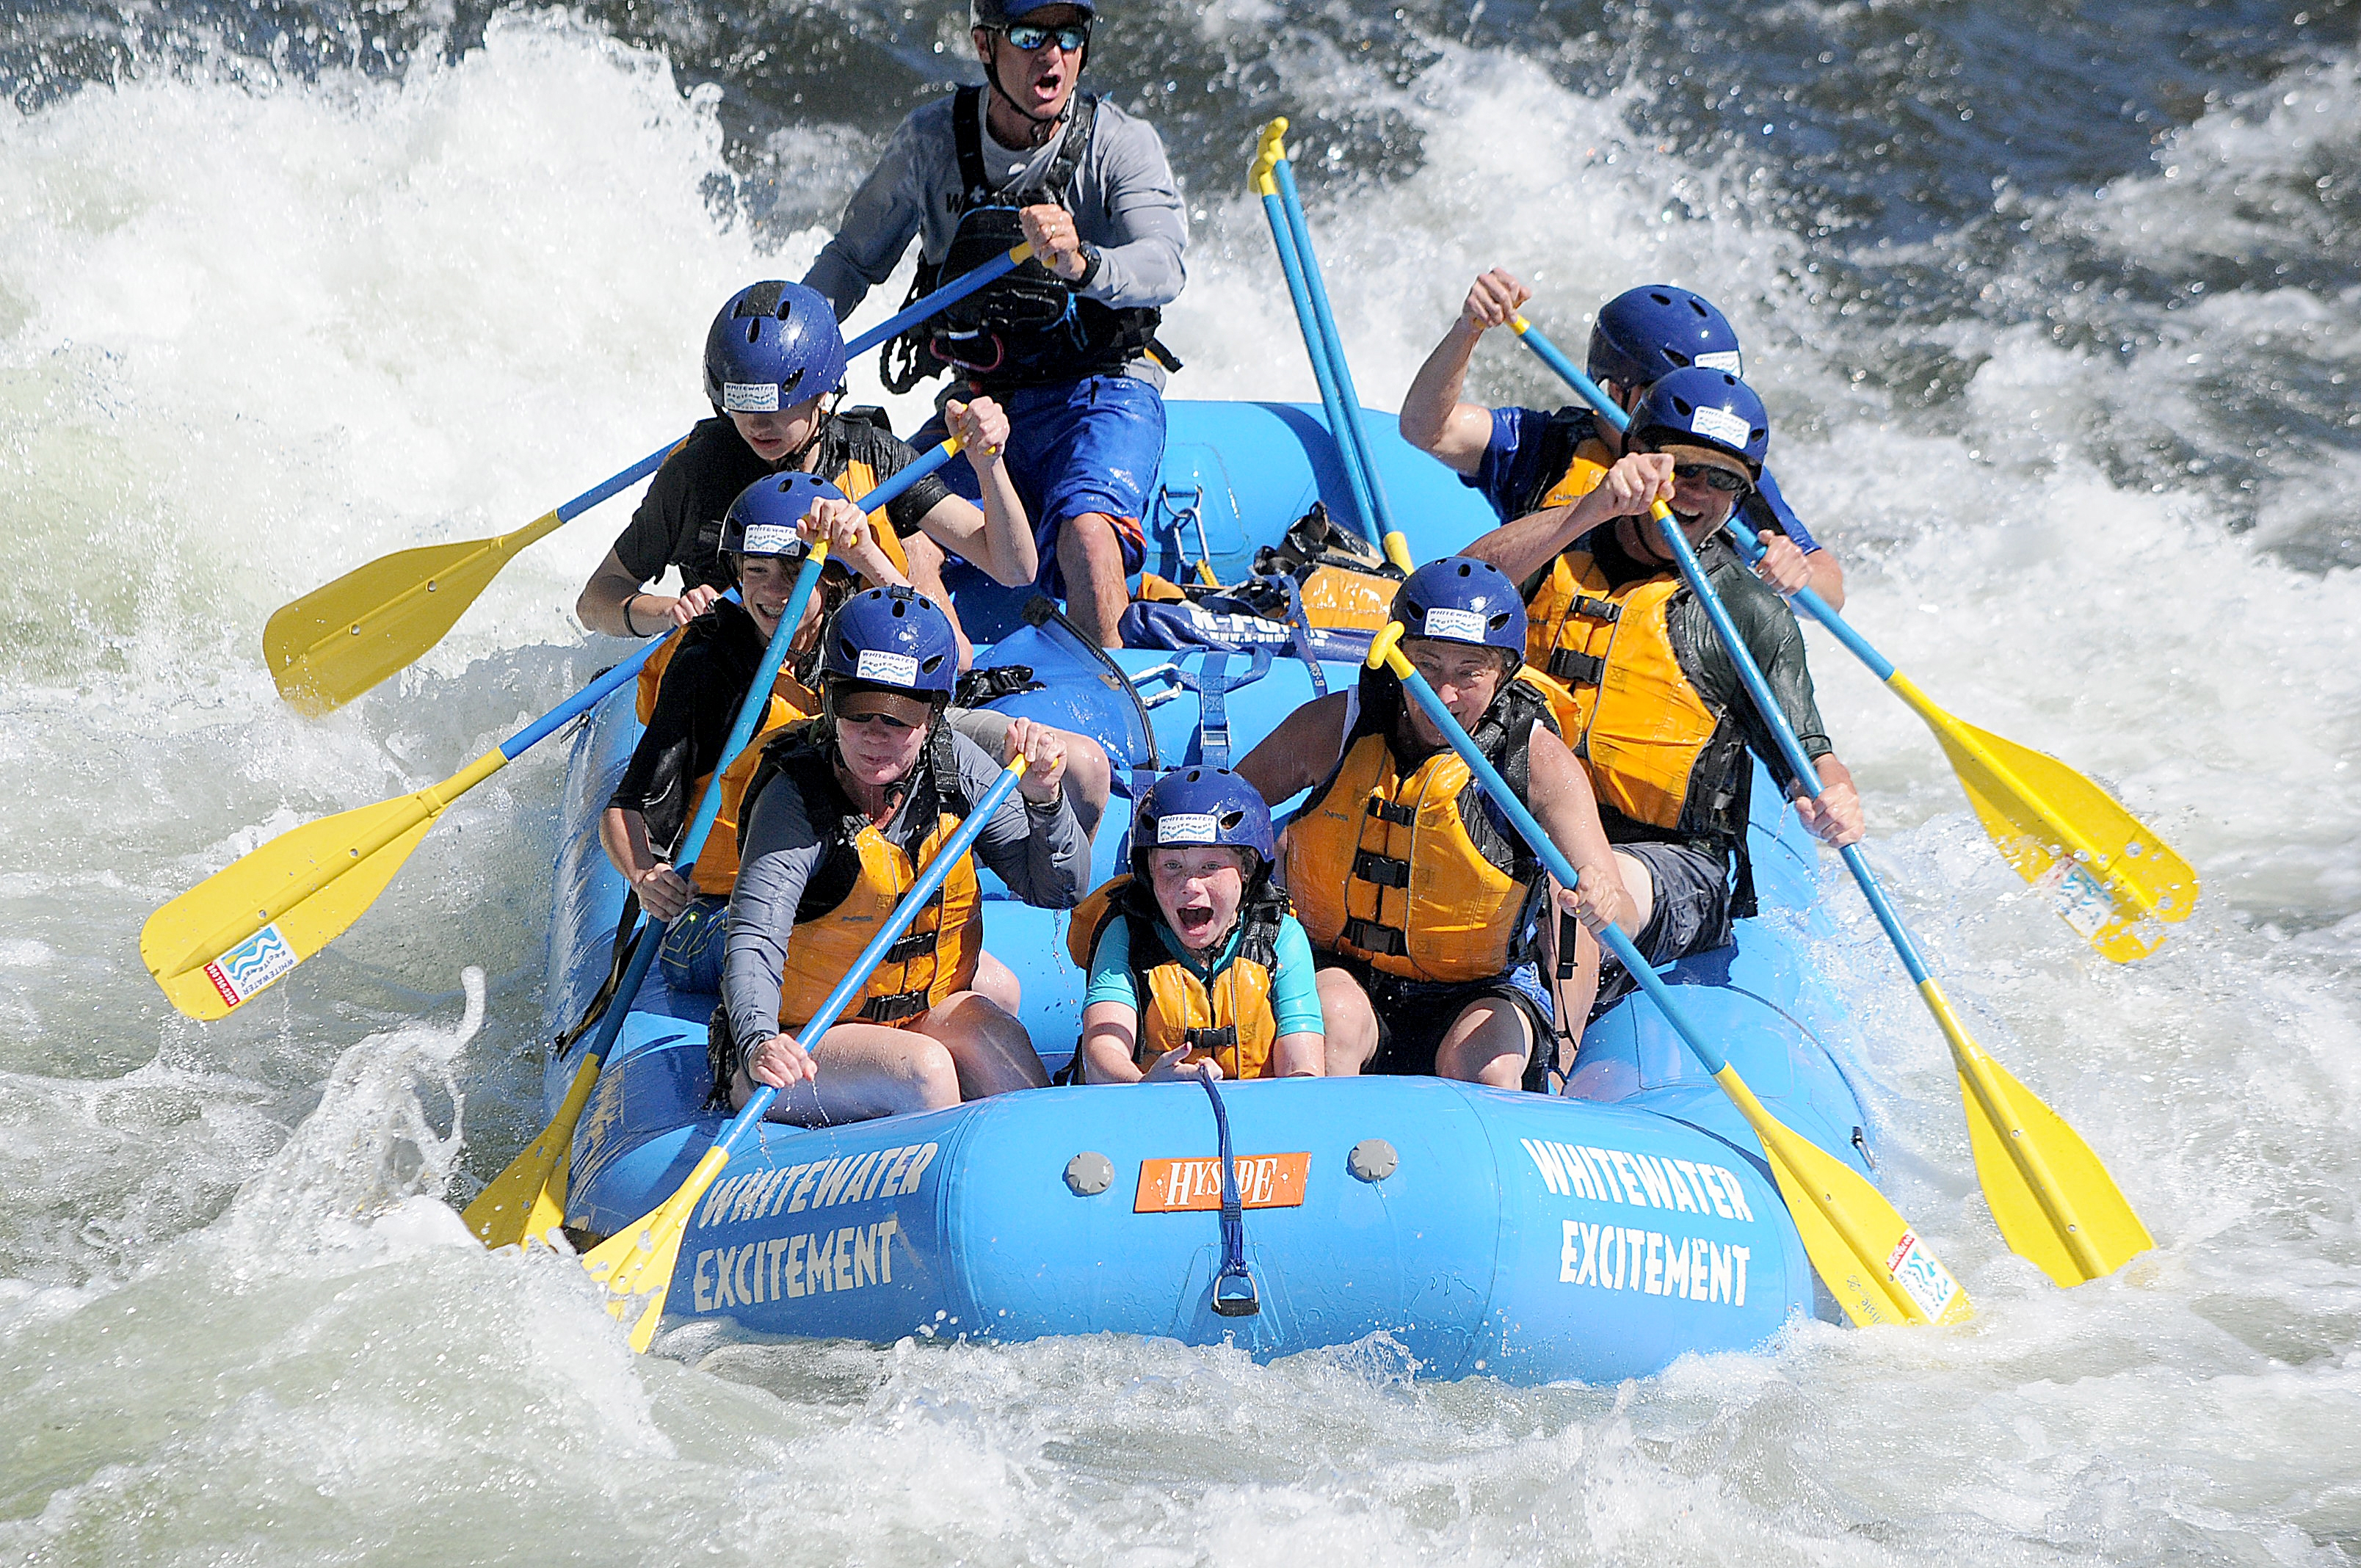 Whitewater Excitement, Inc.